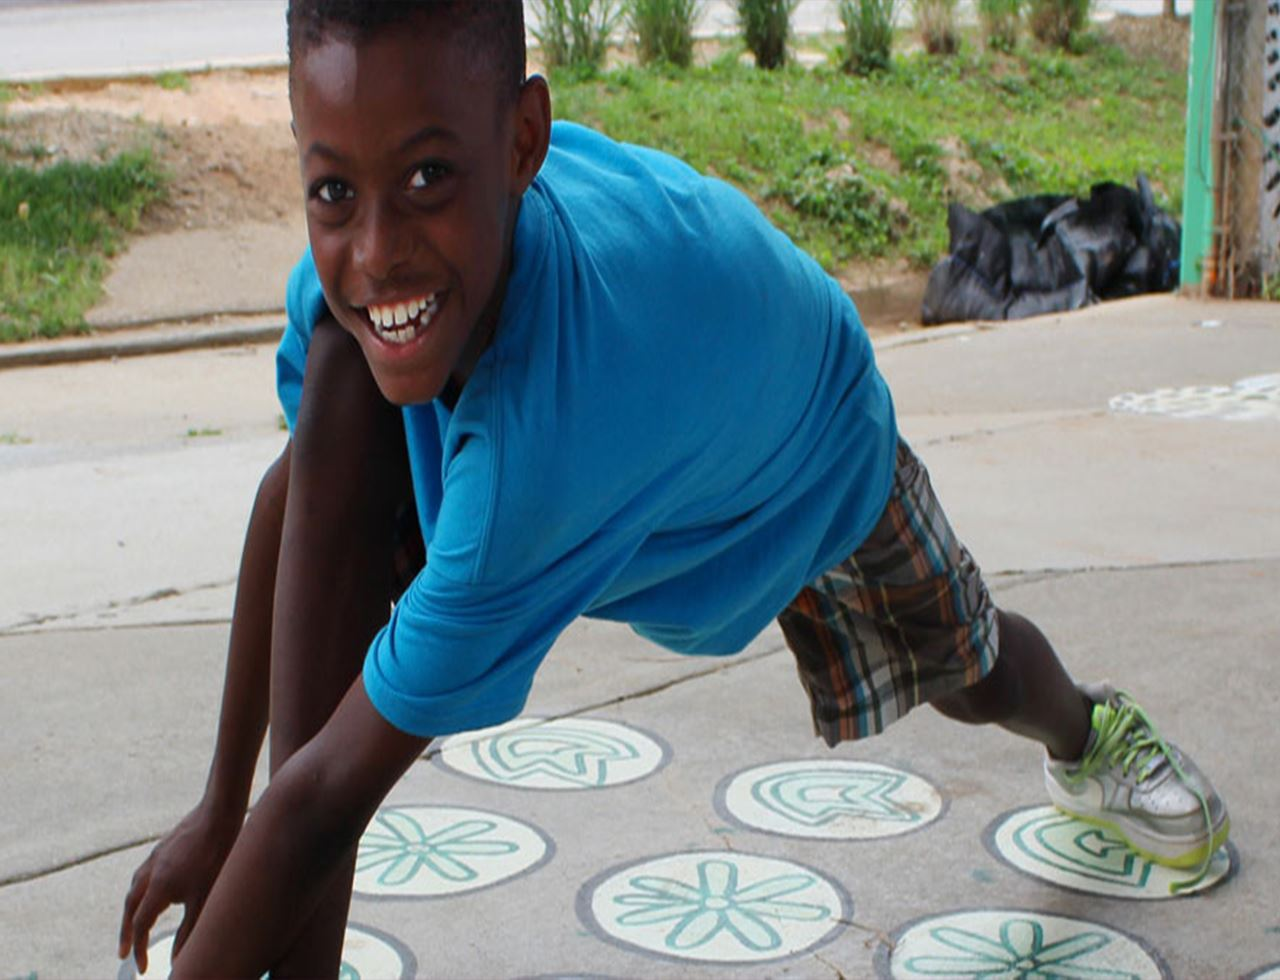 Child playing on interactive sidewalk